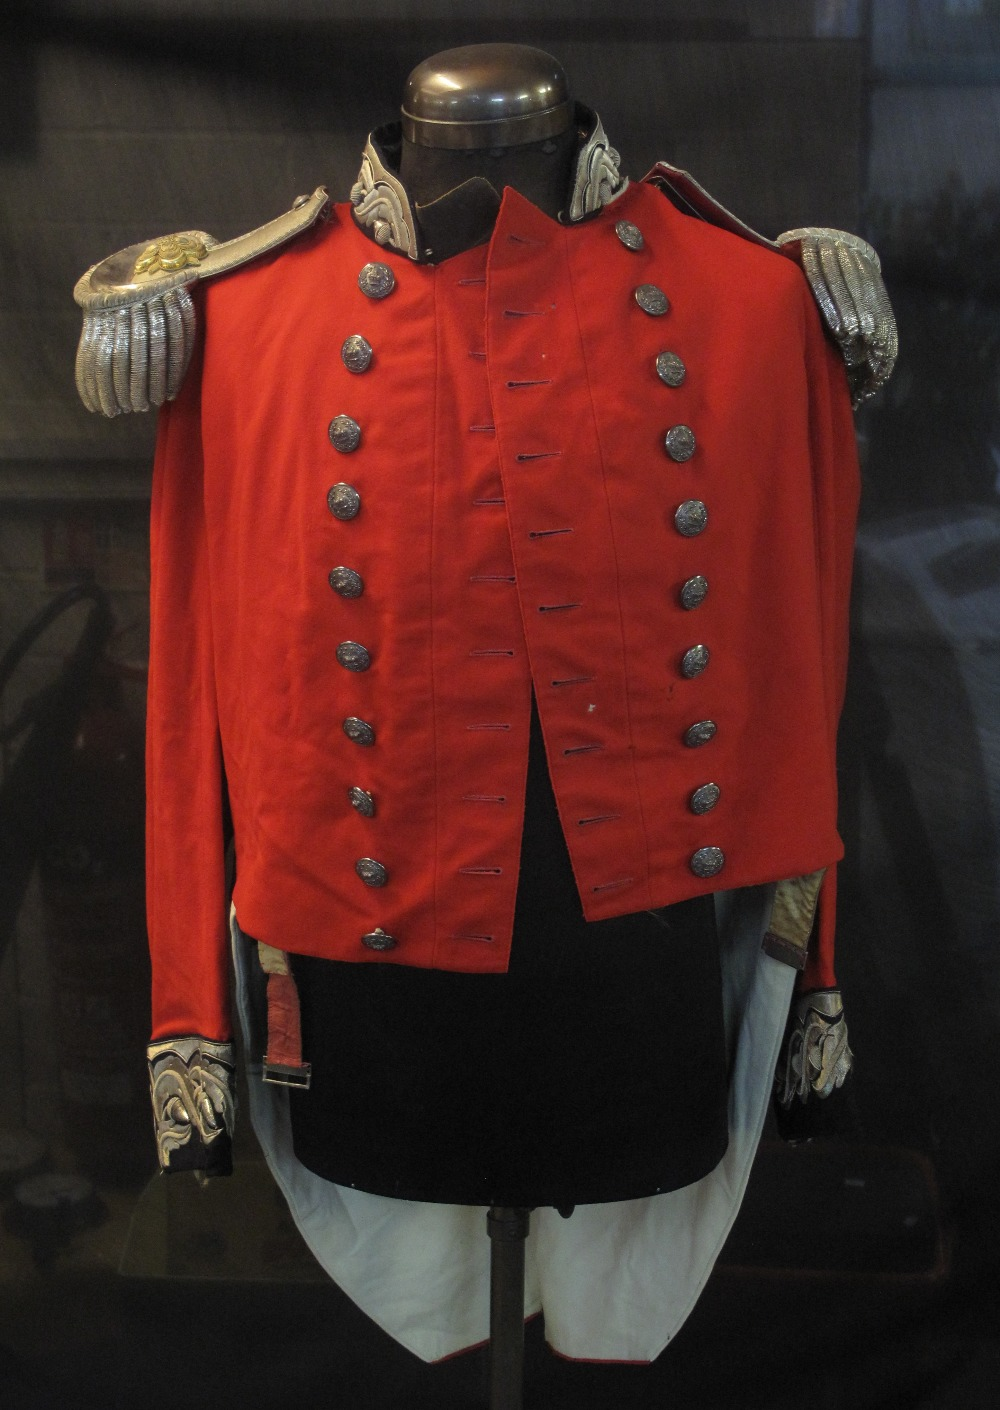 Lot 394 - LATE 18TH/EARLY 19TH CENTURY MILITARY ST